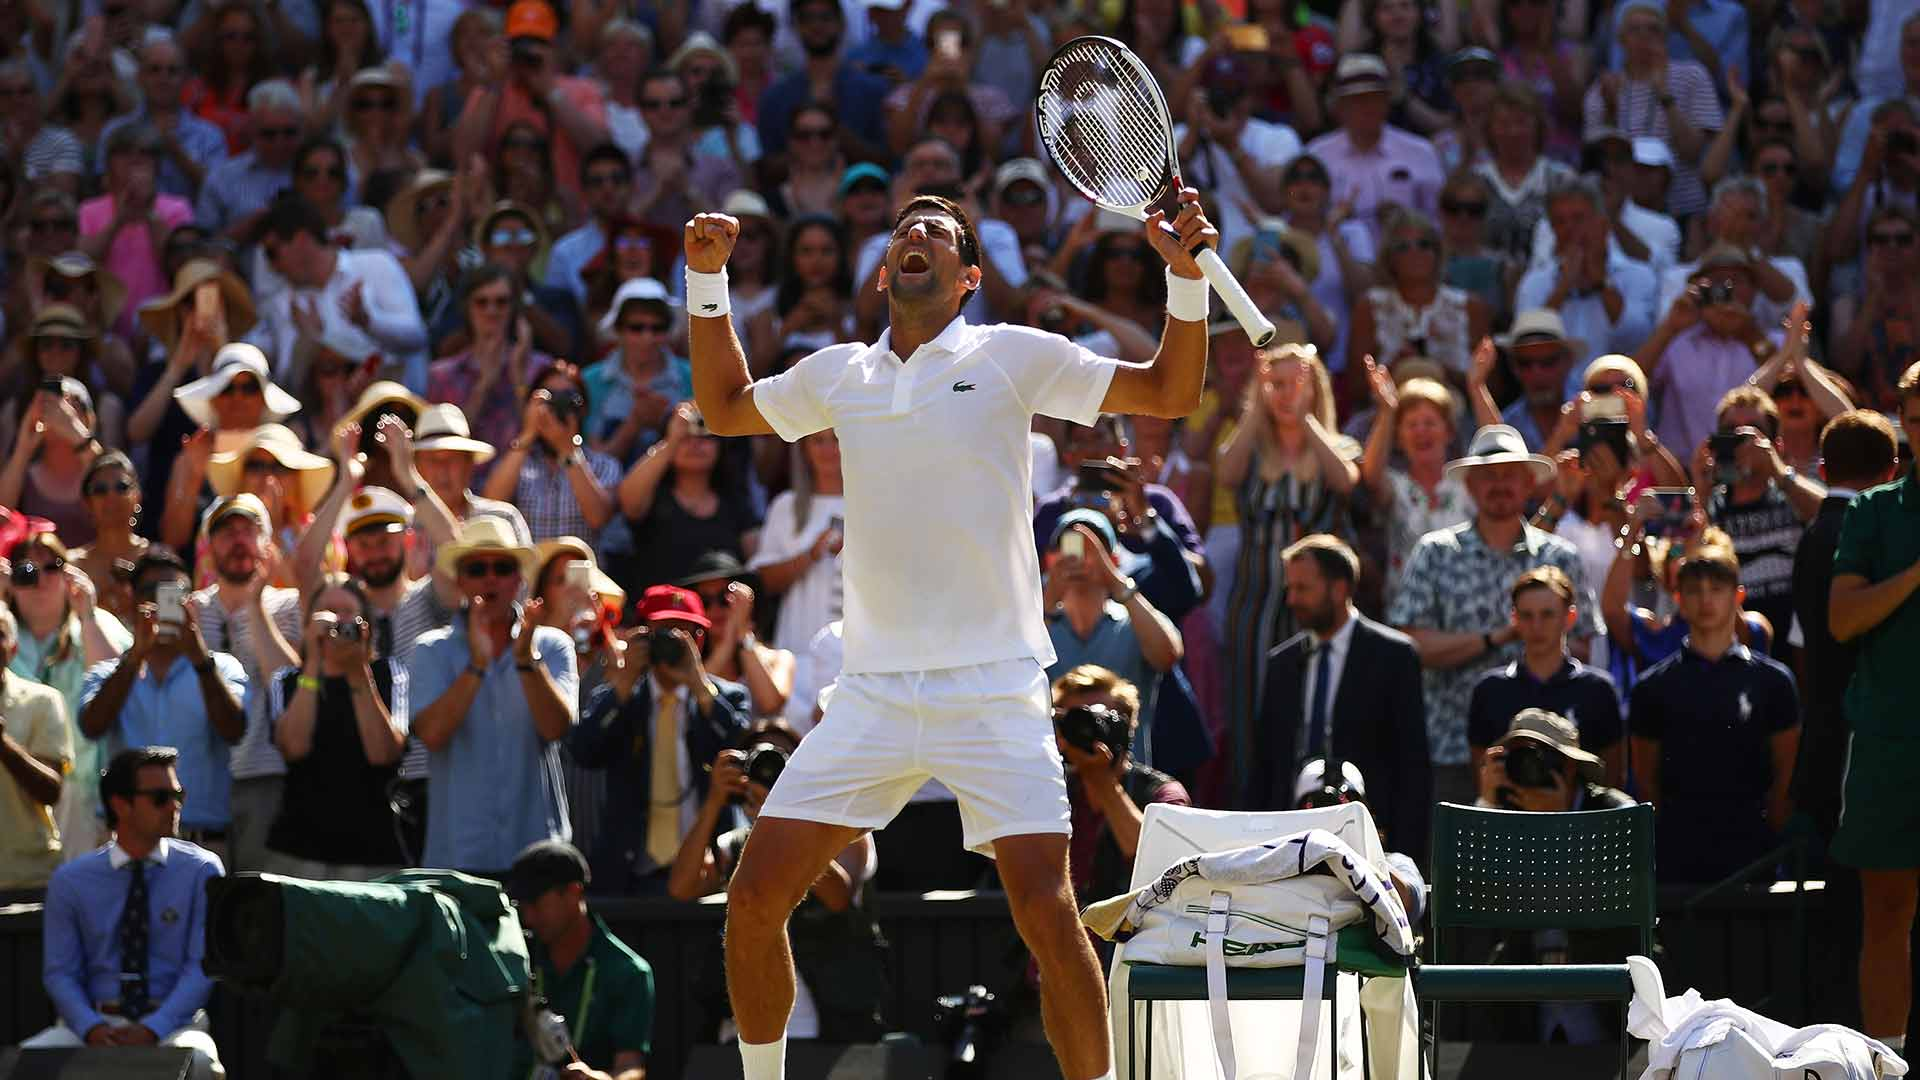 Hey, Novak, how does it feel to win your fourth #Wimbledon ��? ��  ��  ➡️ https://t.co/Isfm5bbYK2 https://t.co/7H5IaqTL9z